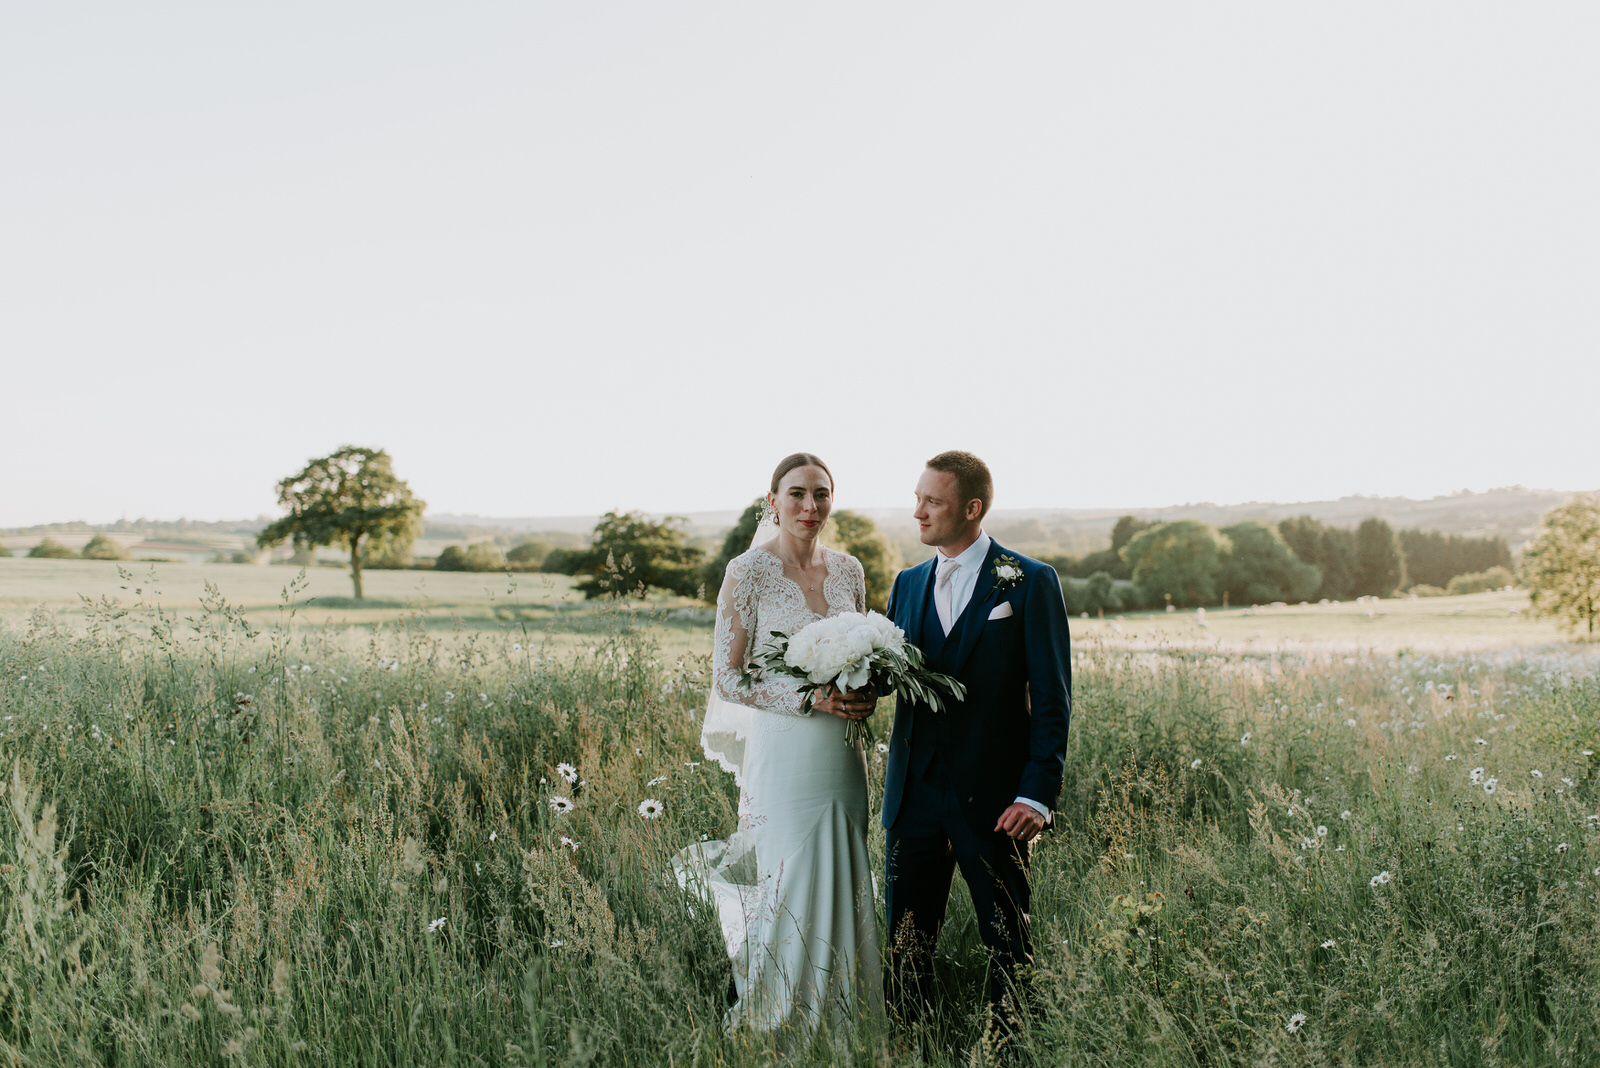 Intimate_Warwickshire_Countryside_Wedding_UK_83.JPG